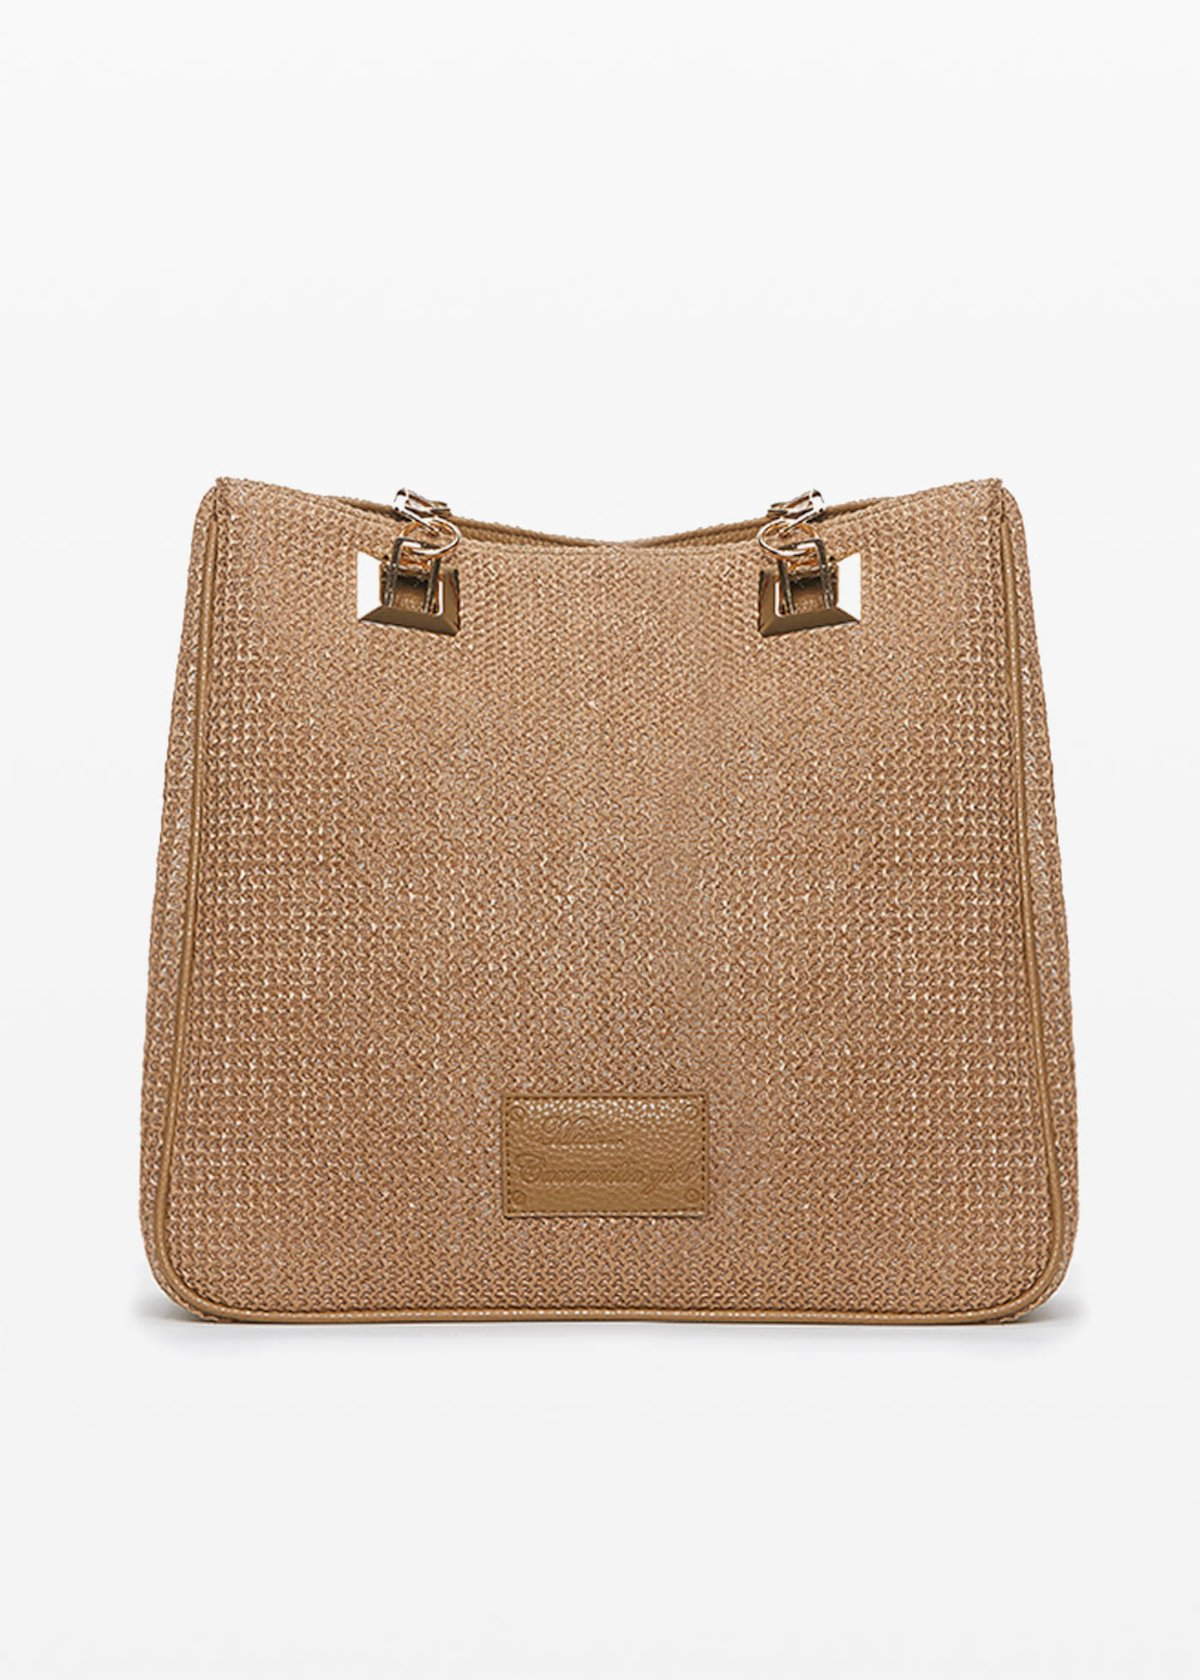 Blindas bag with zipper - Beige - Woman - Category image